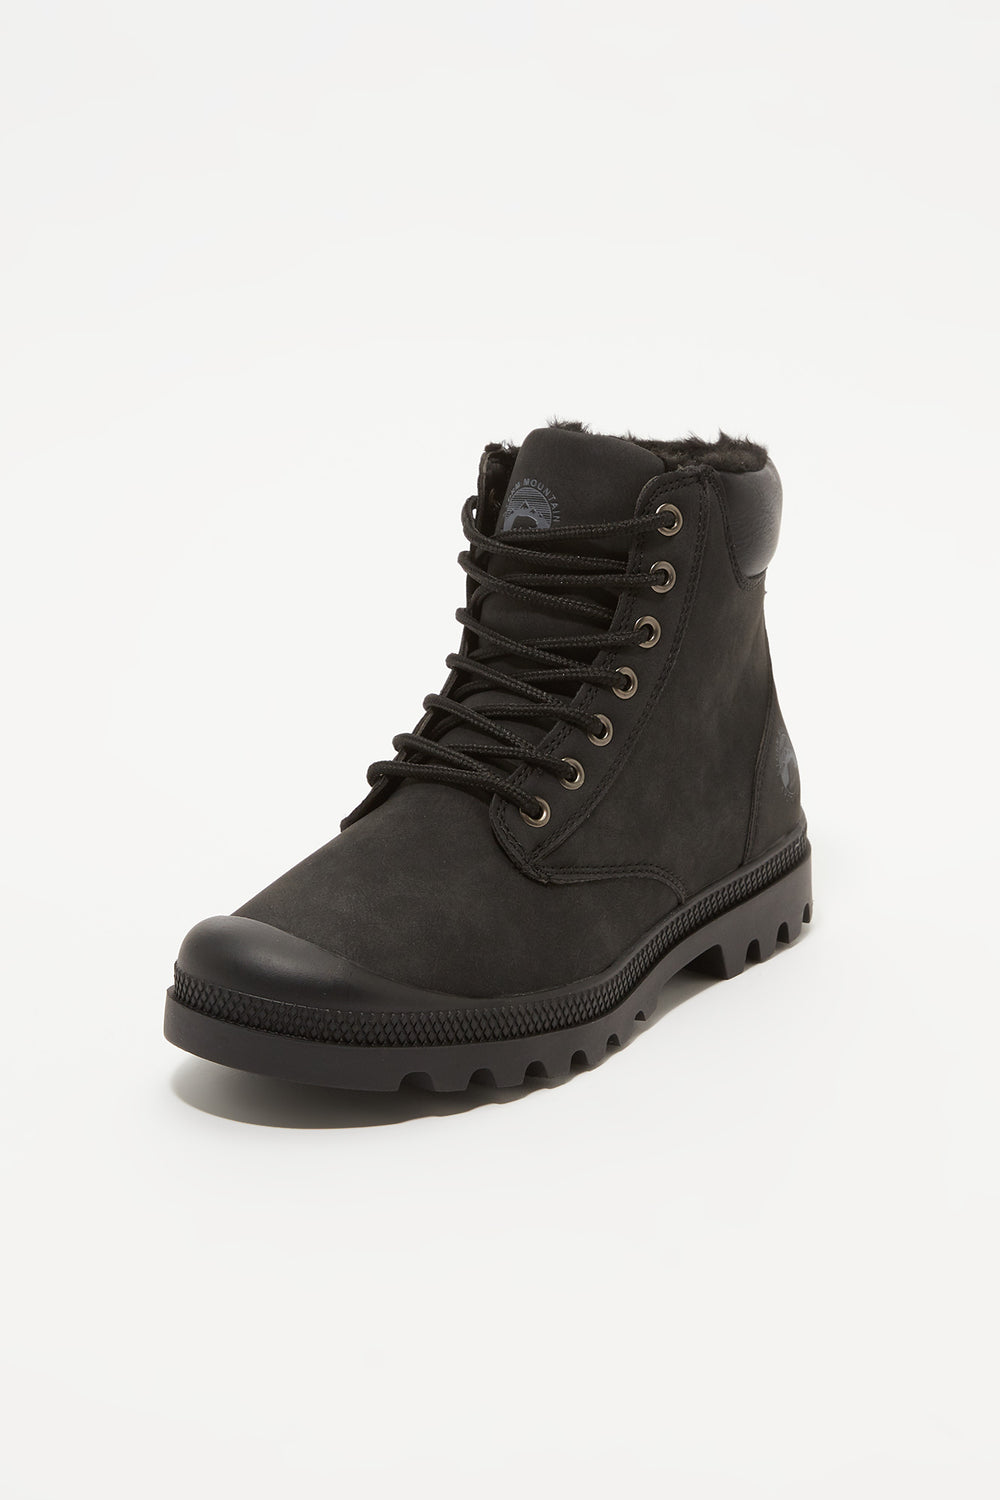 Storm Mountain Youth Faux-Fur Hiker Boots Black